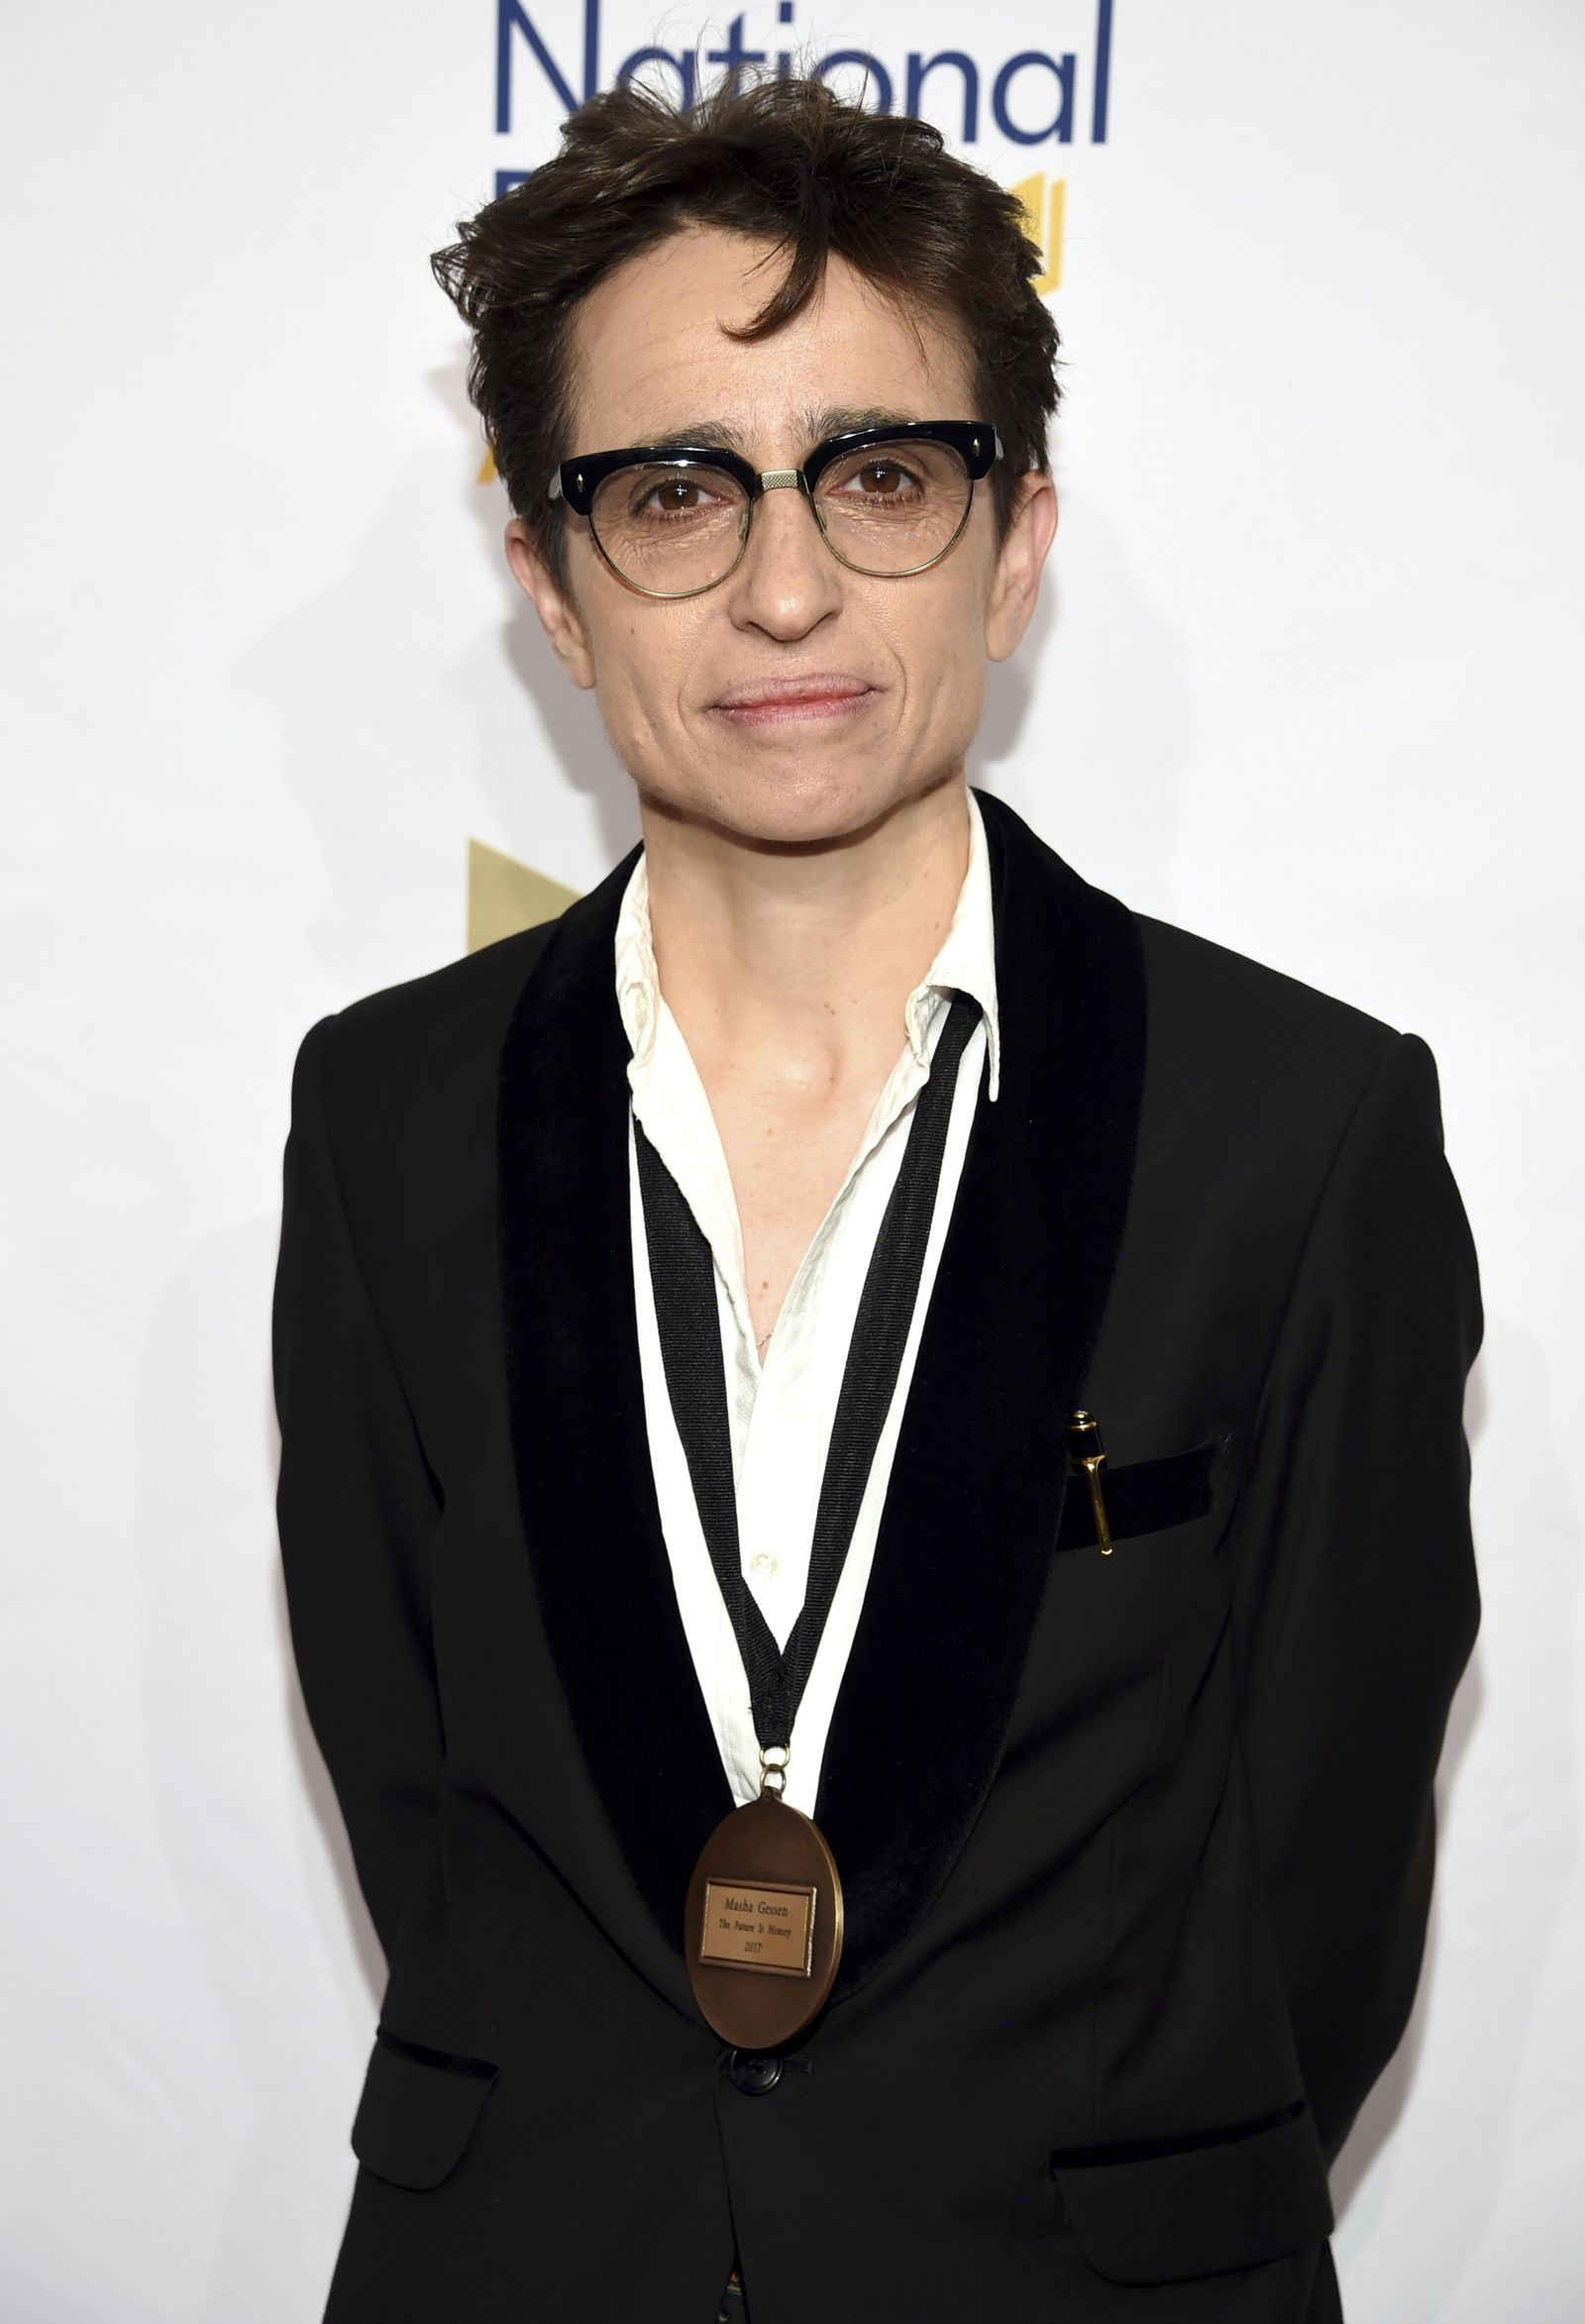 National Book Awards/ Masha Gessen